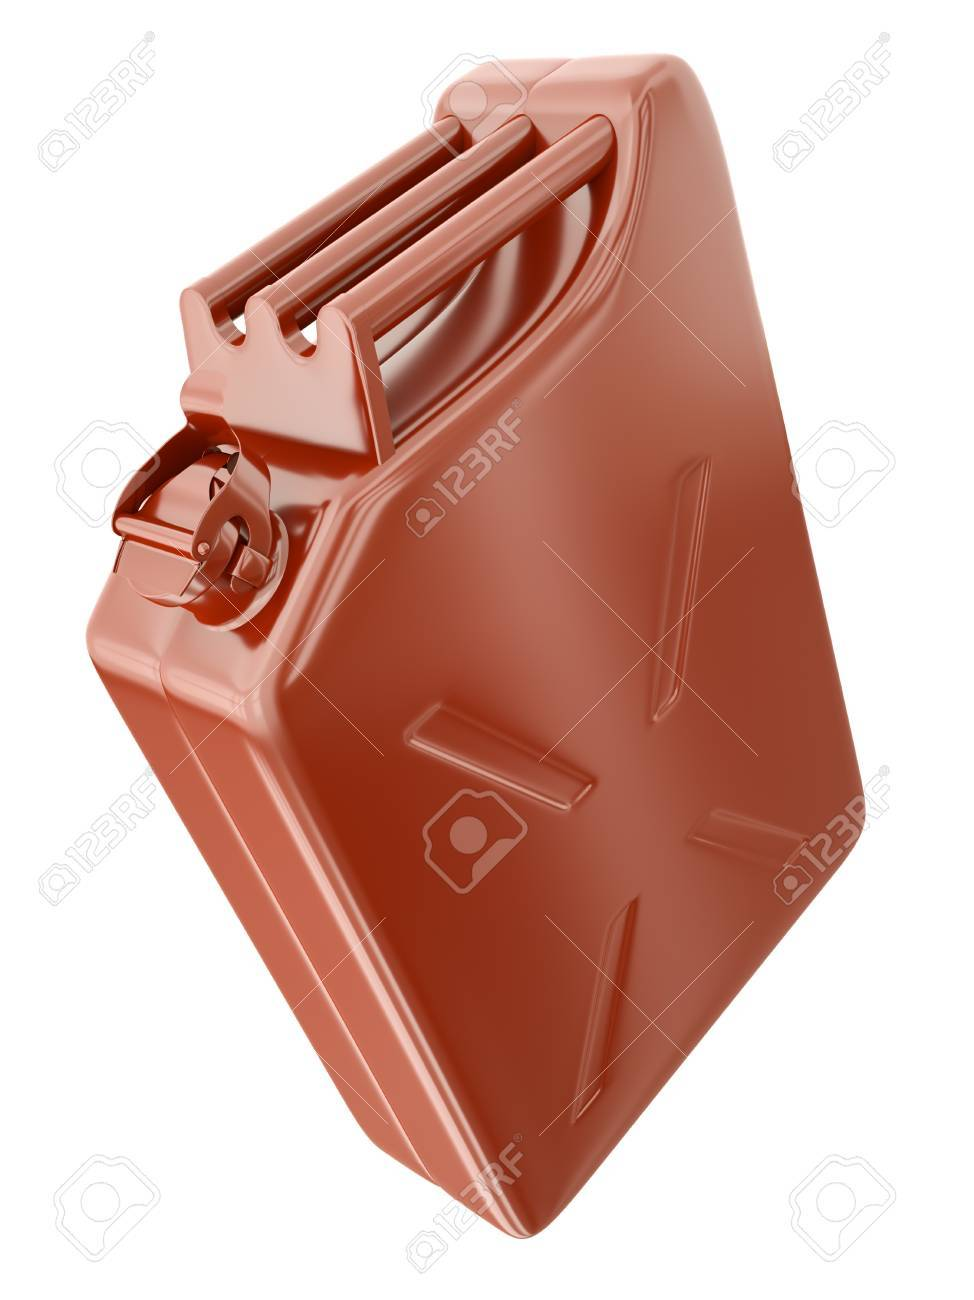 Red fuel container isolated on white background. 3D render. Stock Photo - 10407752